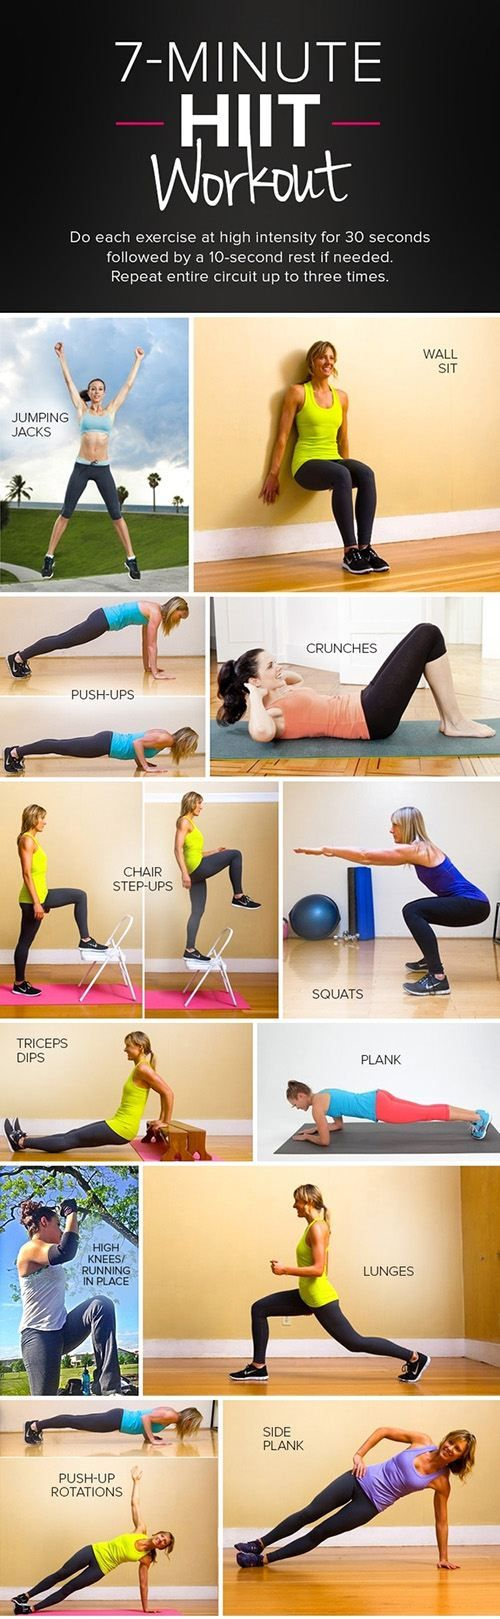 7 minute workout! Just a quicky for days you are unable to gym it up!